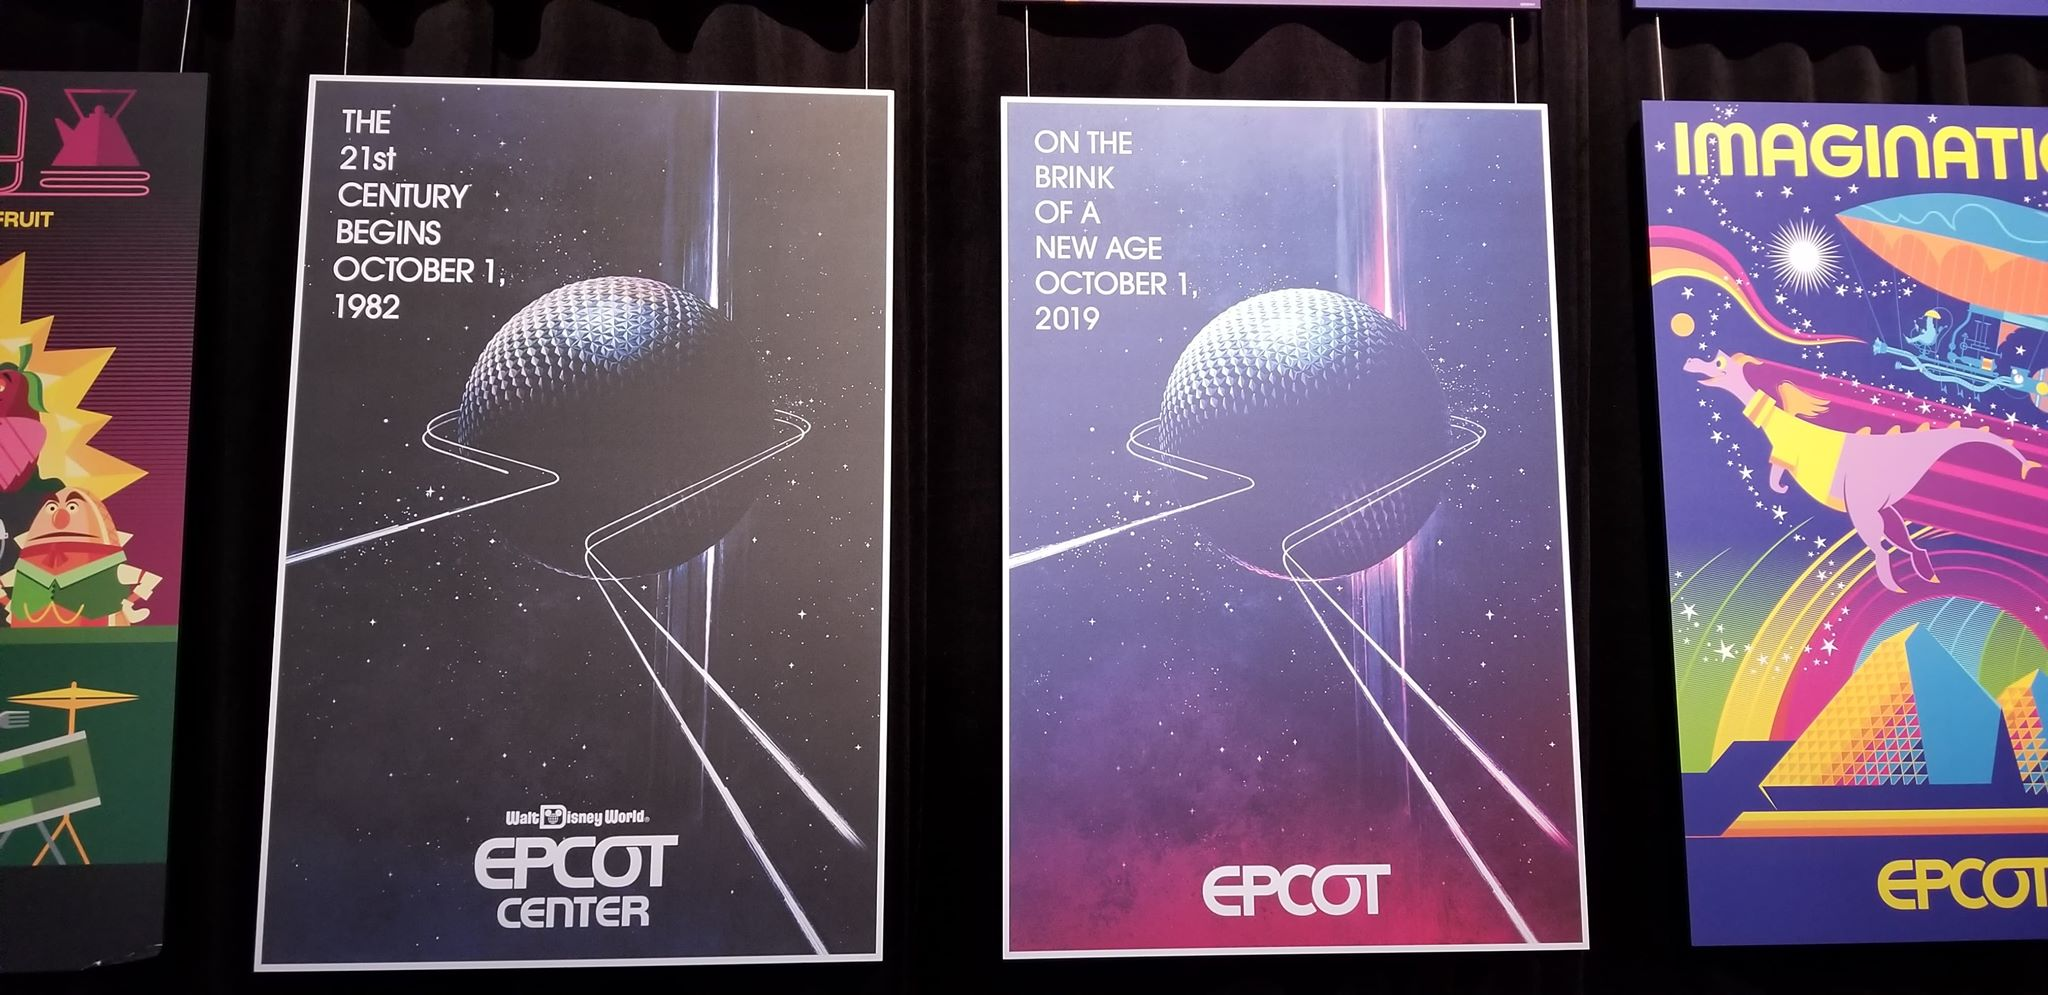 Spaceship Earth changes